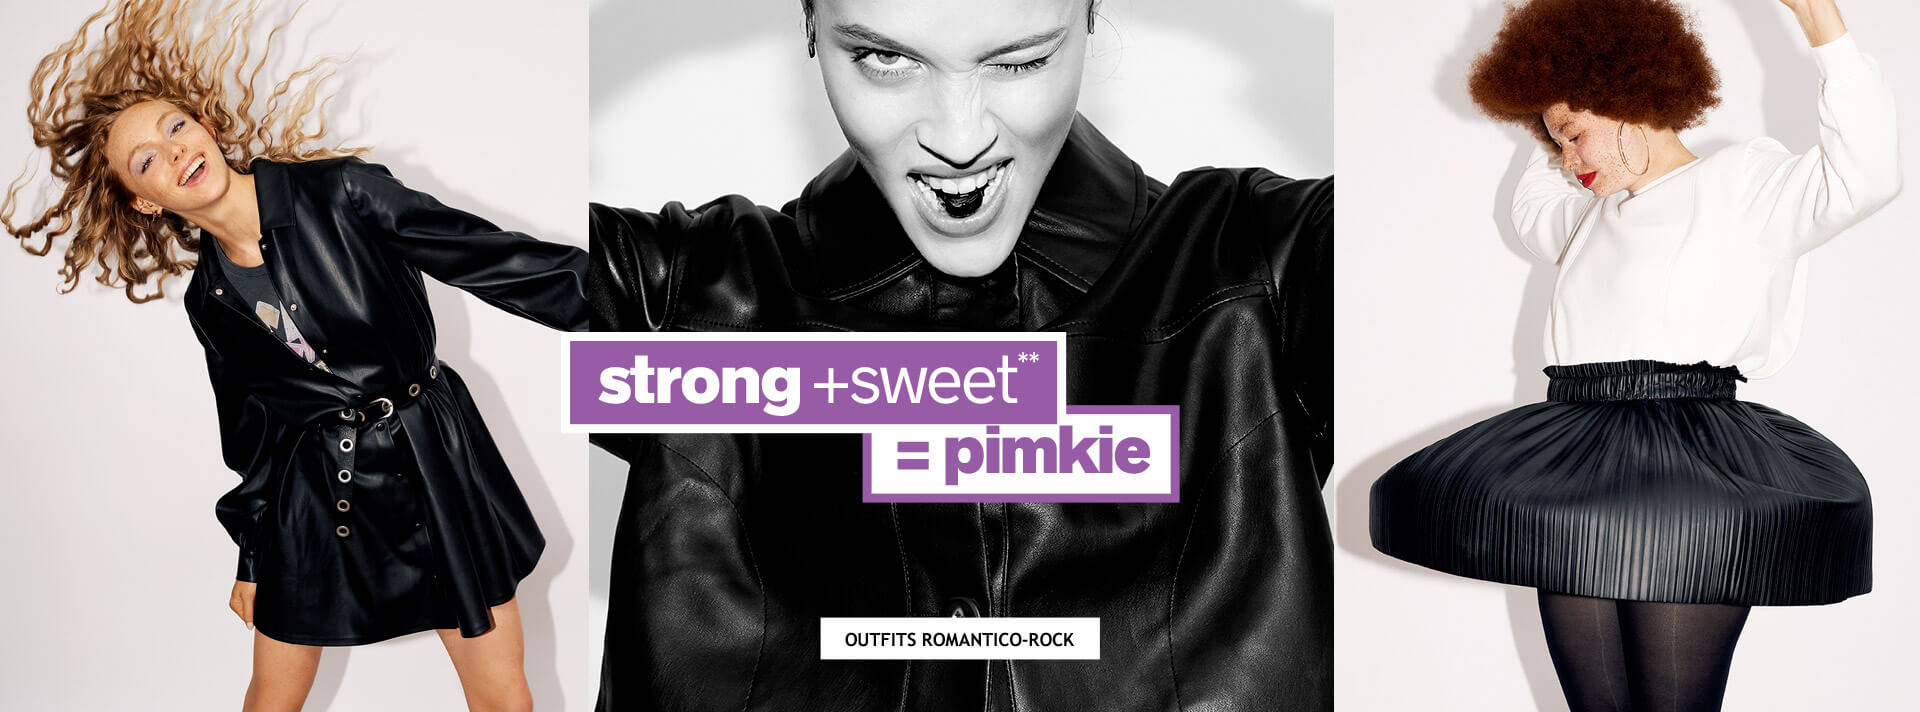 STRONG & SWEET**